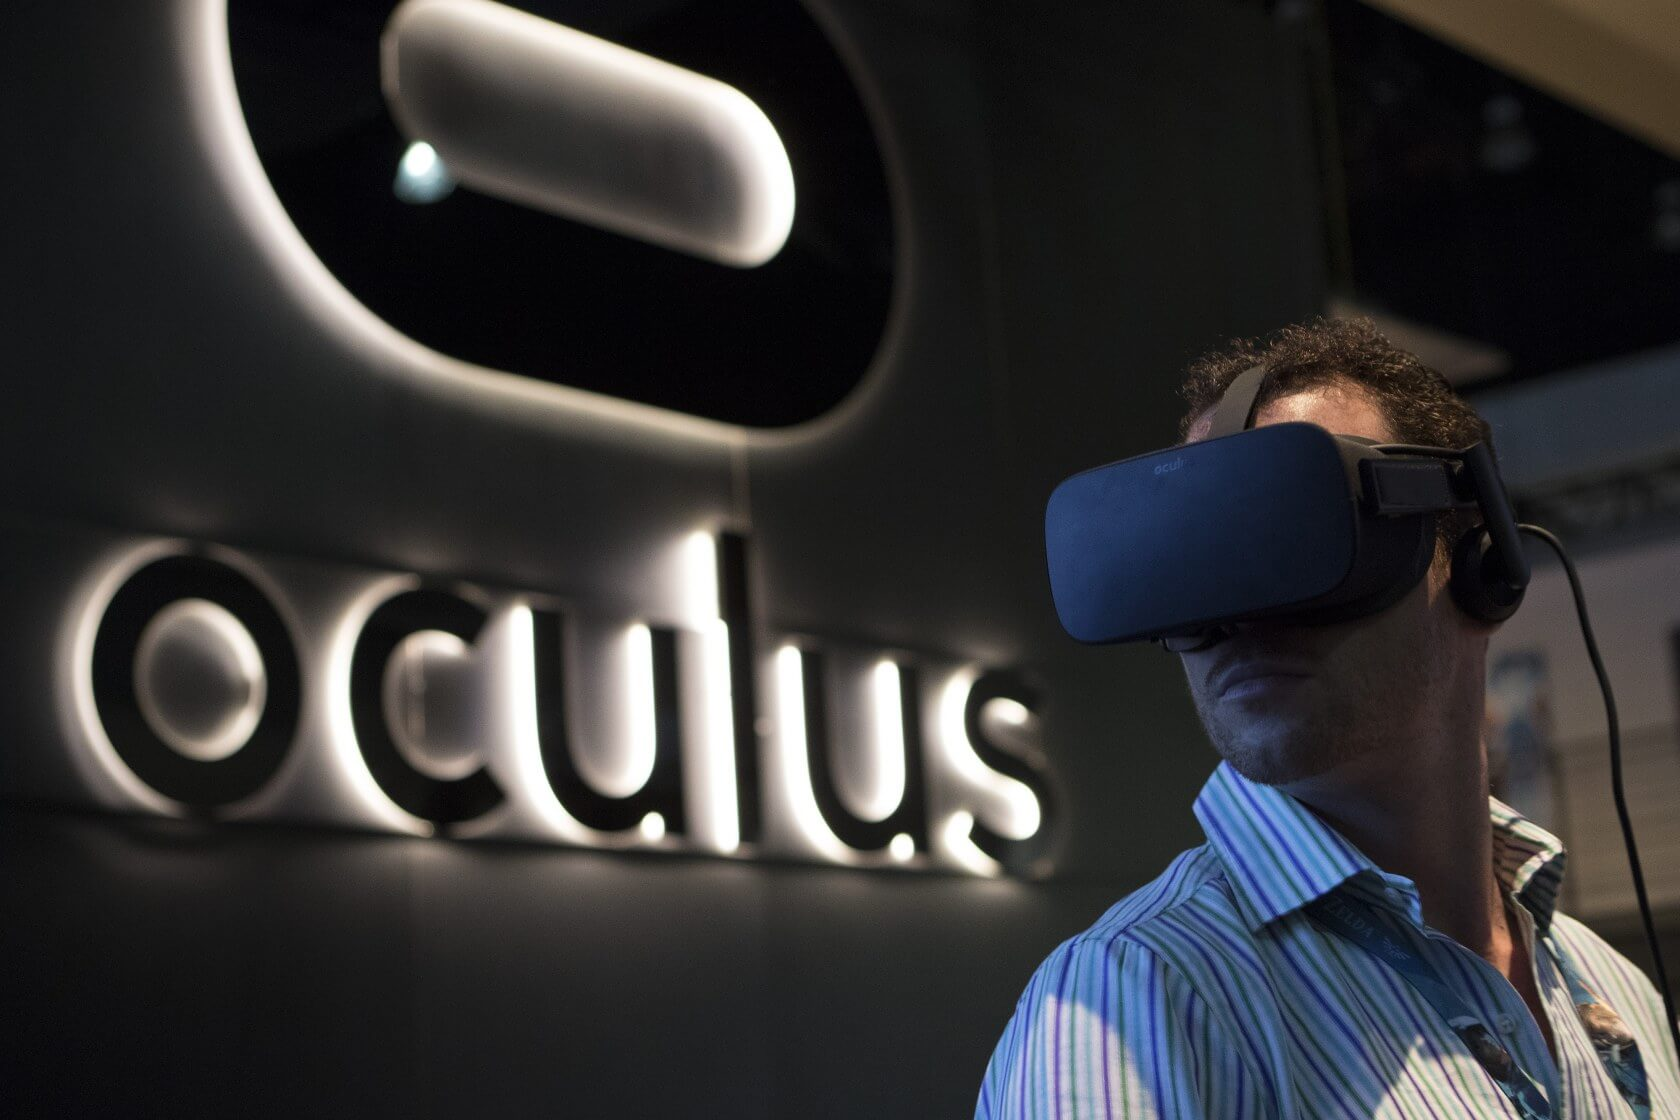 Oculus shuts down movie purchases for Rift users, says the